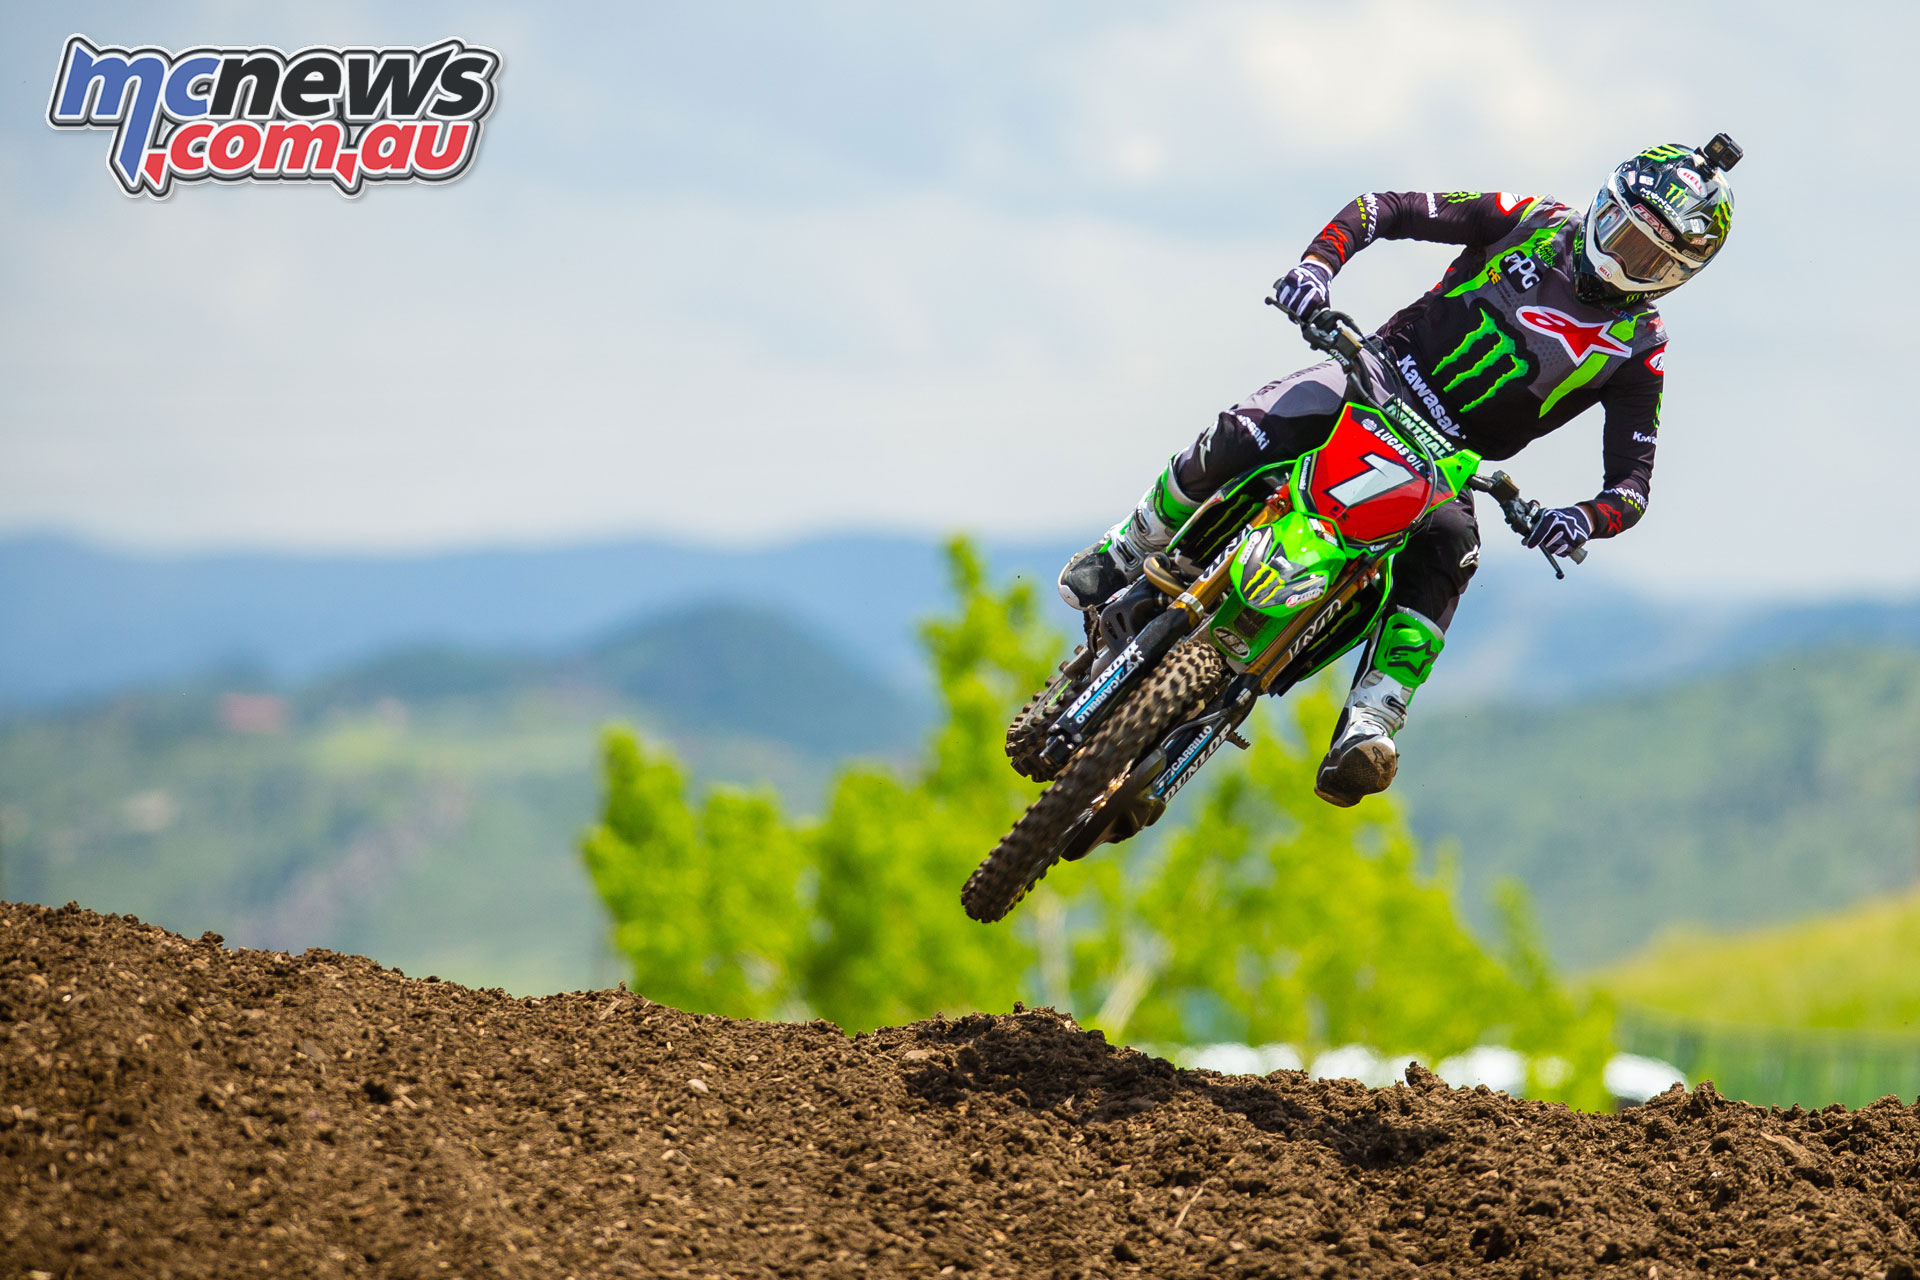 AMA MX Rnd Thunder Valley Tomac JK MX Lakewood